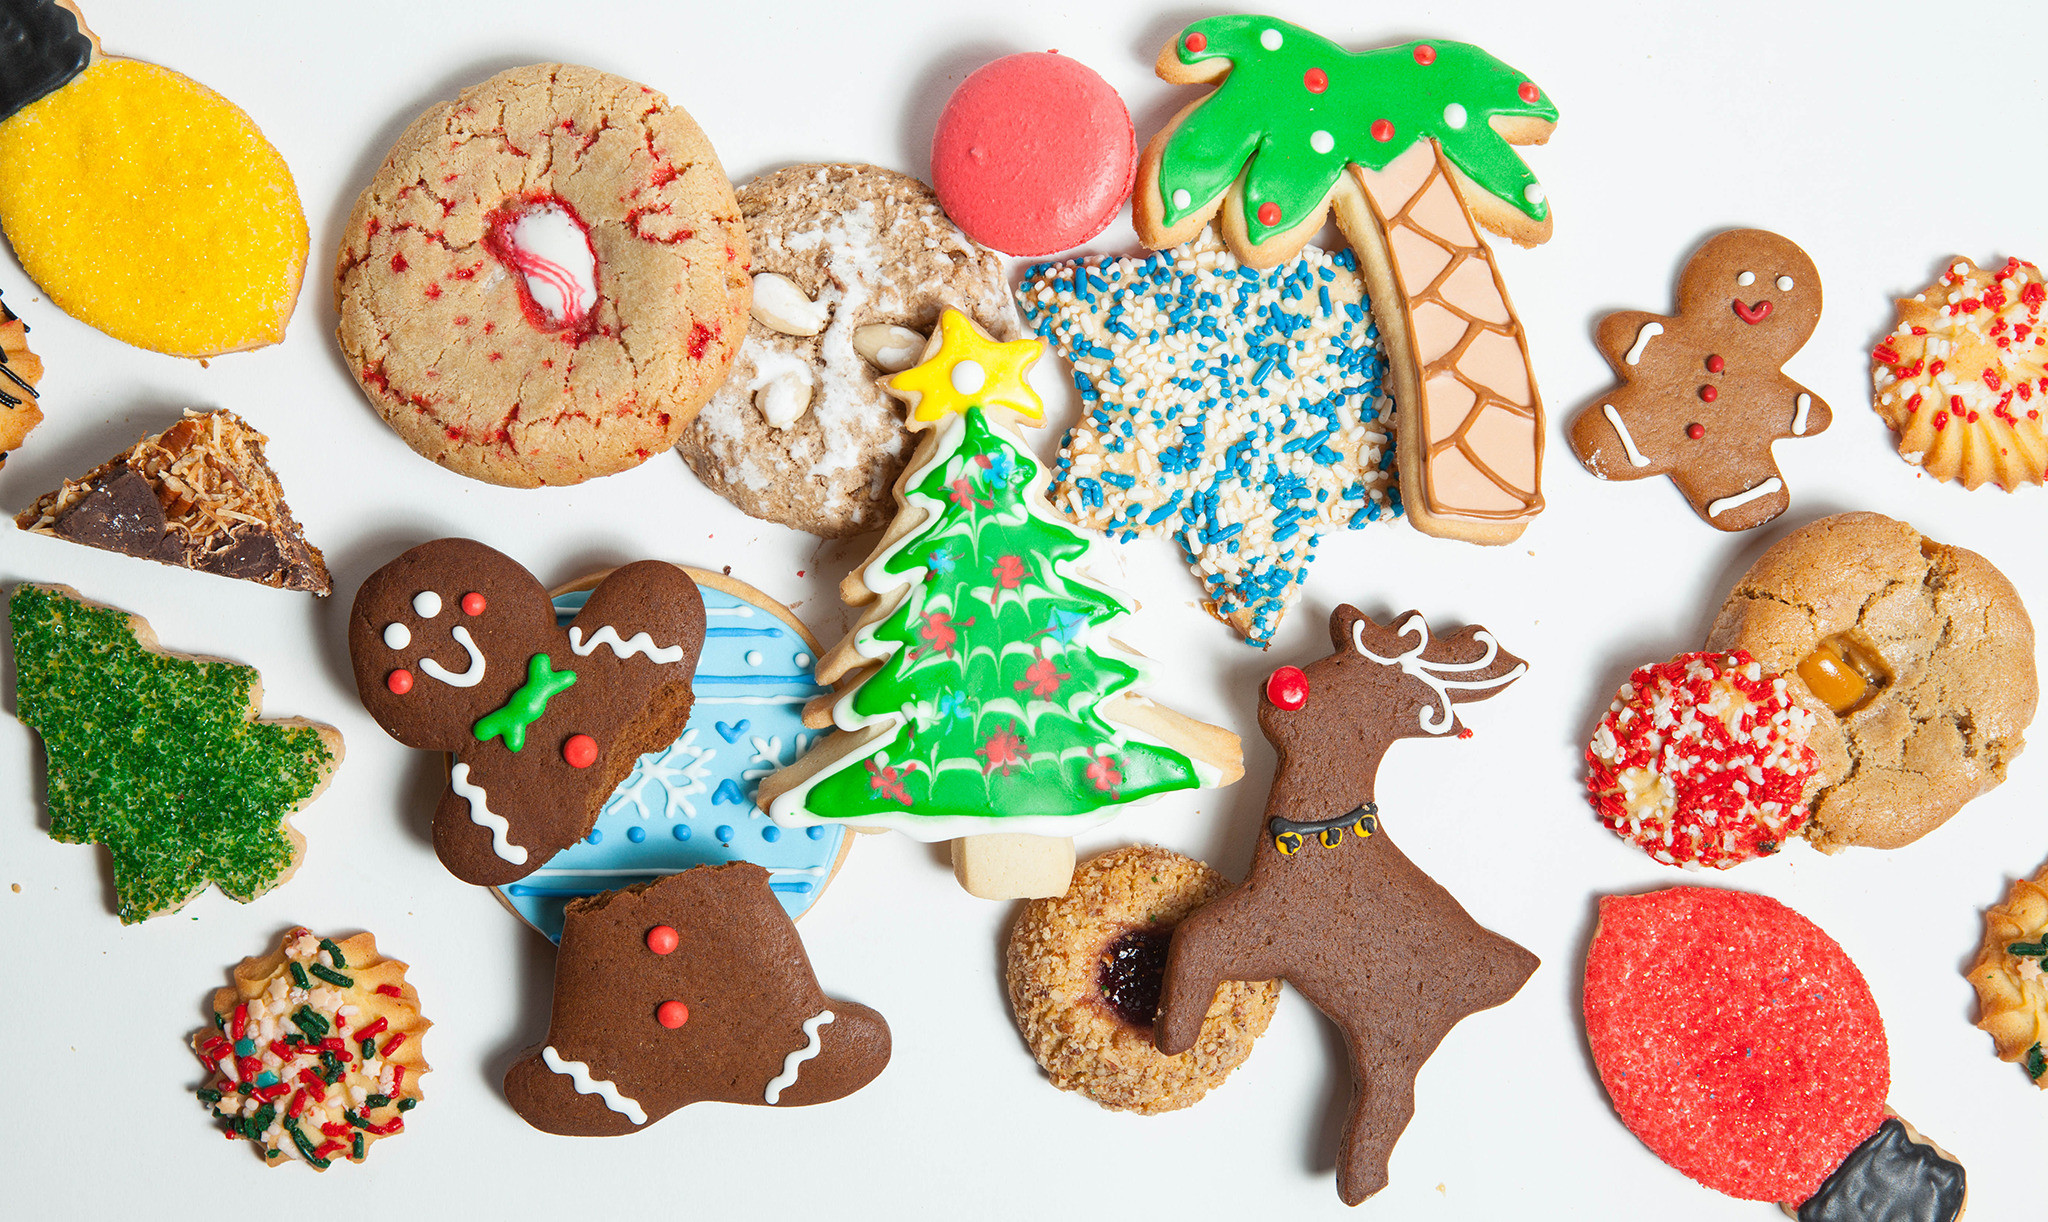 Christmas Cookies To Buy  Christmas in Los Angeles 2019 Guide to Holiday Events in LA